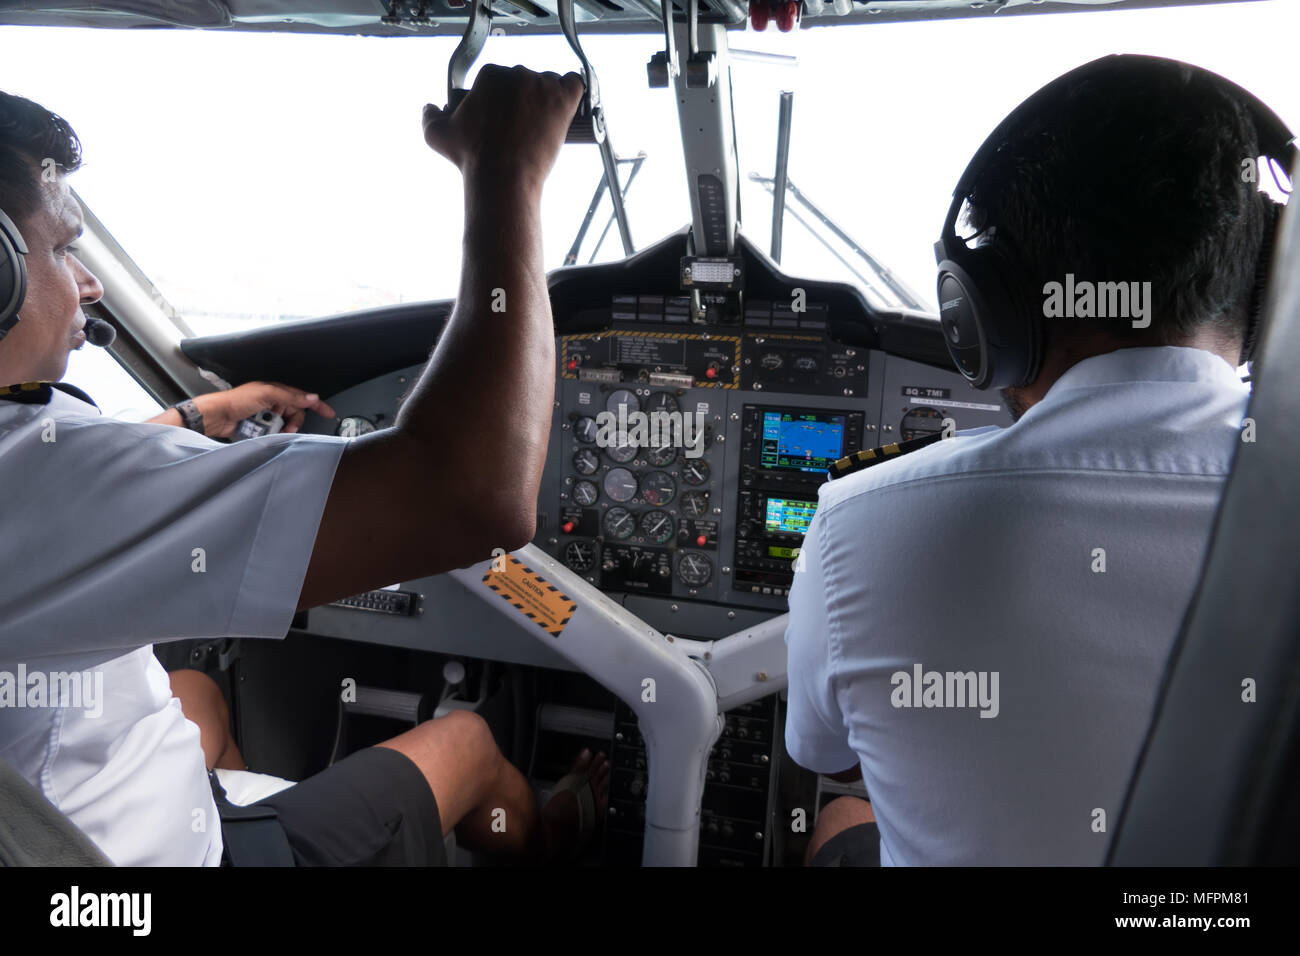 View of the cockpit of a small airplane flying in the sky. Team of pilots on plane, crew touching equipment and commands on dashboard. Aviation, trave - Stock Image